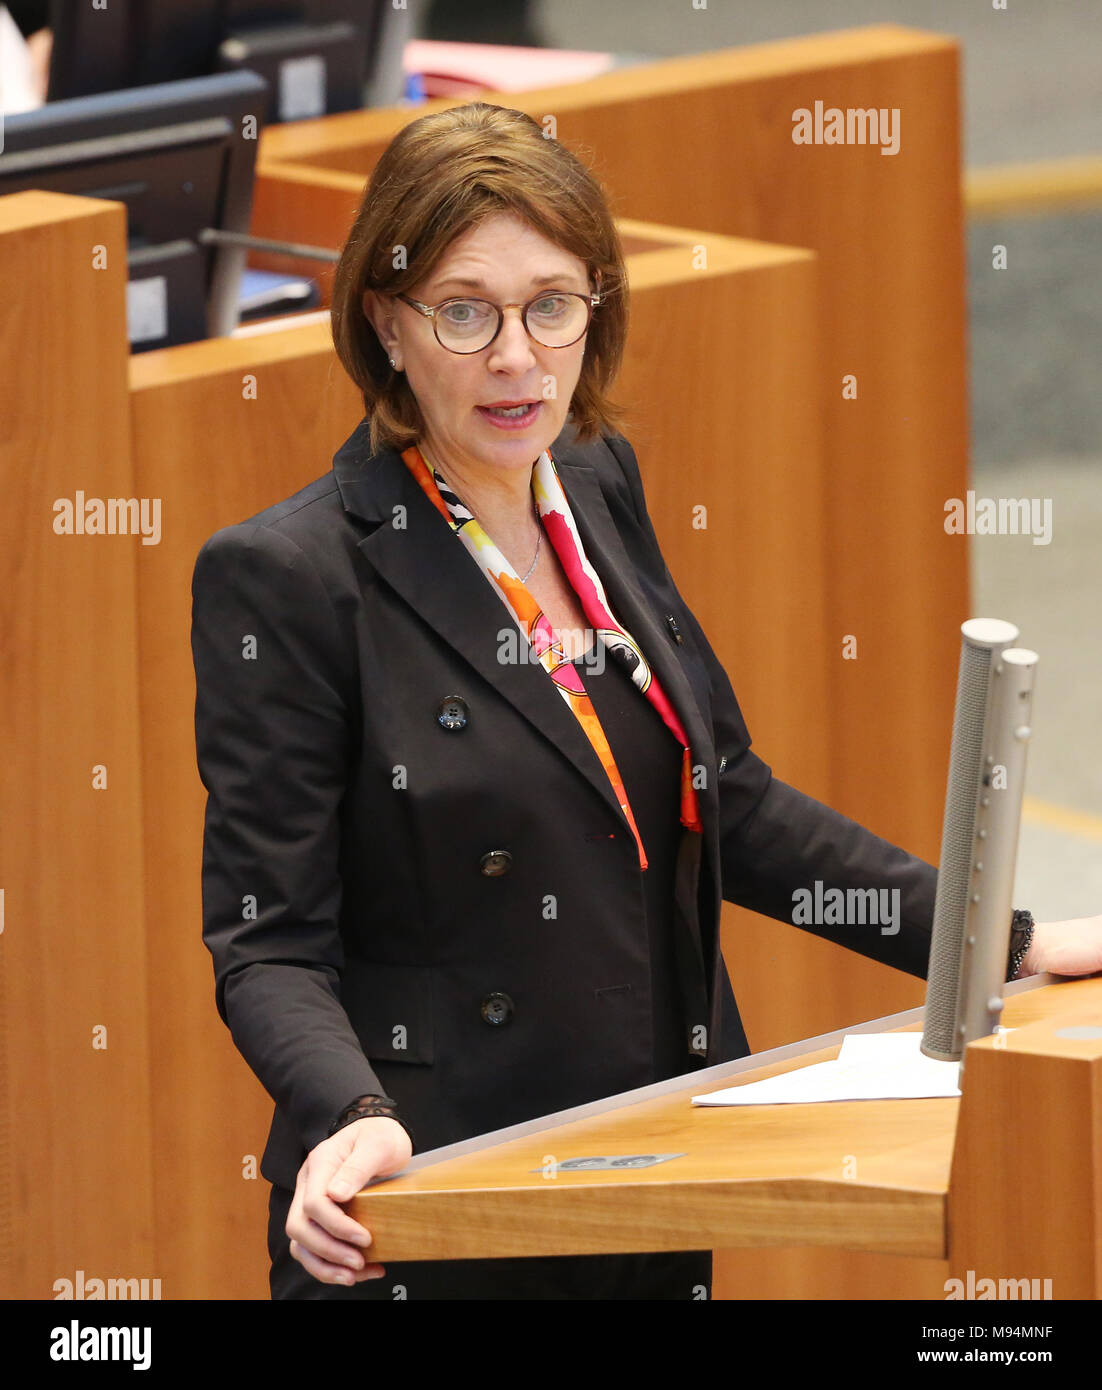 22 March 2018, Germany, Duesseldorf: North Rhine Westphalia's (NRW) Minister for Schools, Yvonne Gebauer, of the Free Democratic Party (FDP) speaking during the session of the north rhine-westphalian state parliament. Topics of the session are rules for the state's art foundation and the introduction of a legislation amendment in schools for nine years of school until A-levels. Photo: Roland Weihrauch/dpa - Stock Image